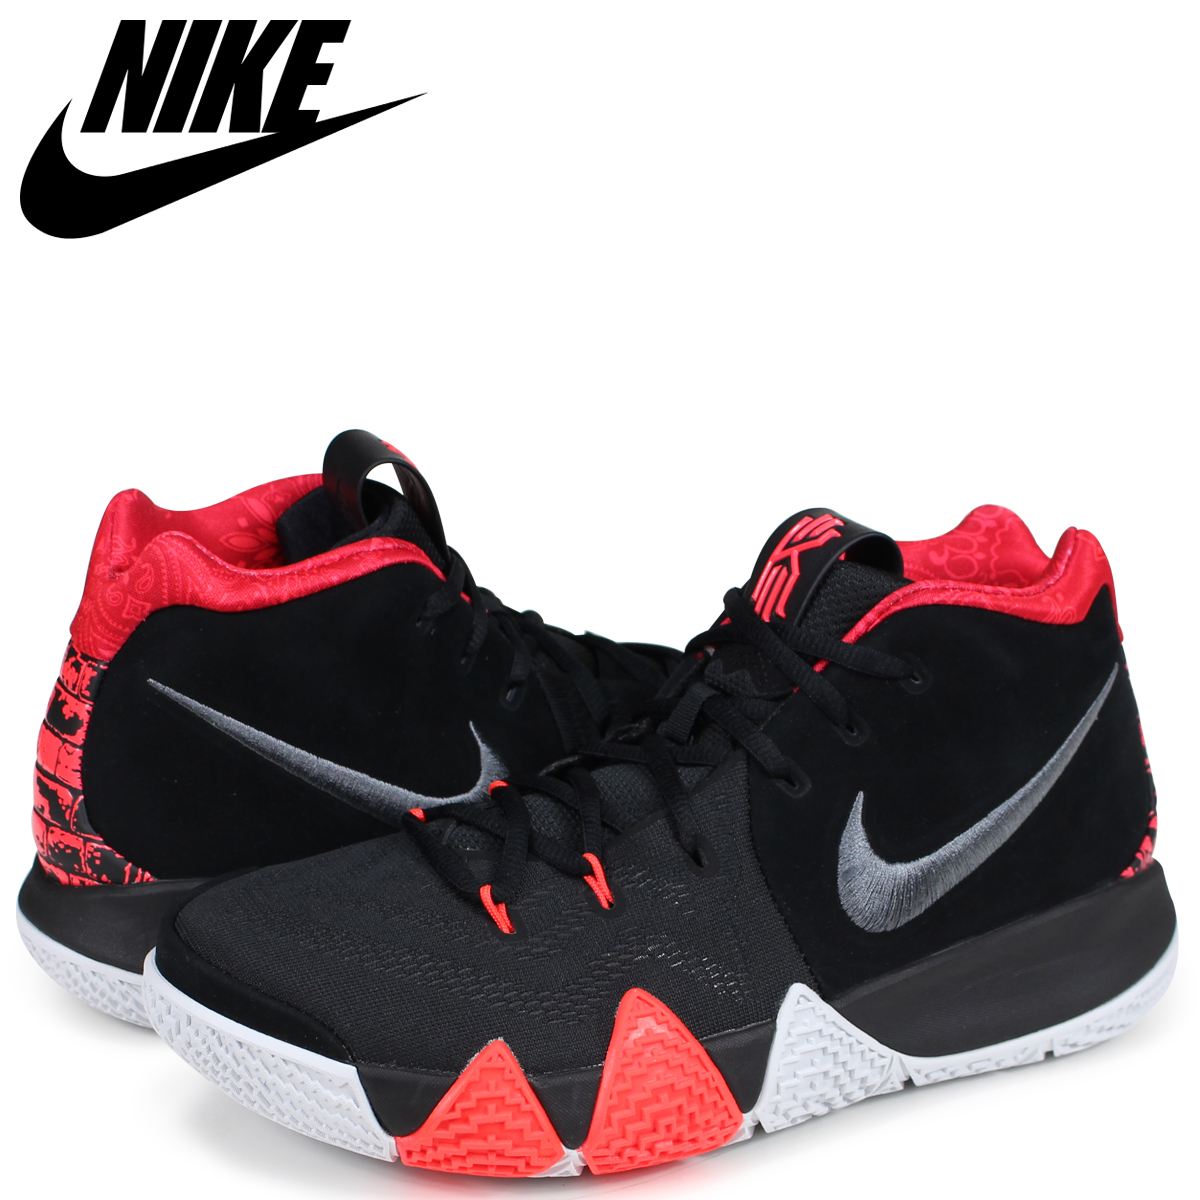 NIKE KYRIE 4 EP 41 FOR THE AGES ナイキ カイリー4 スニーカー メンズ 943807-005 ブラック 【zzi】